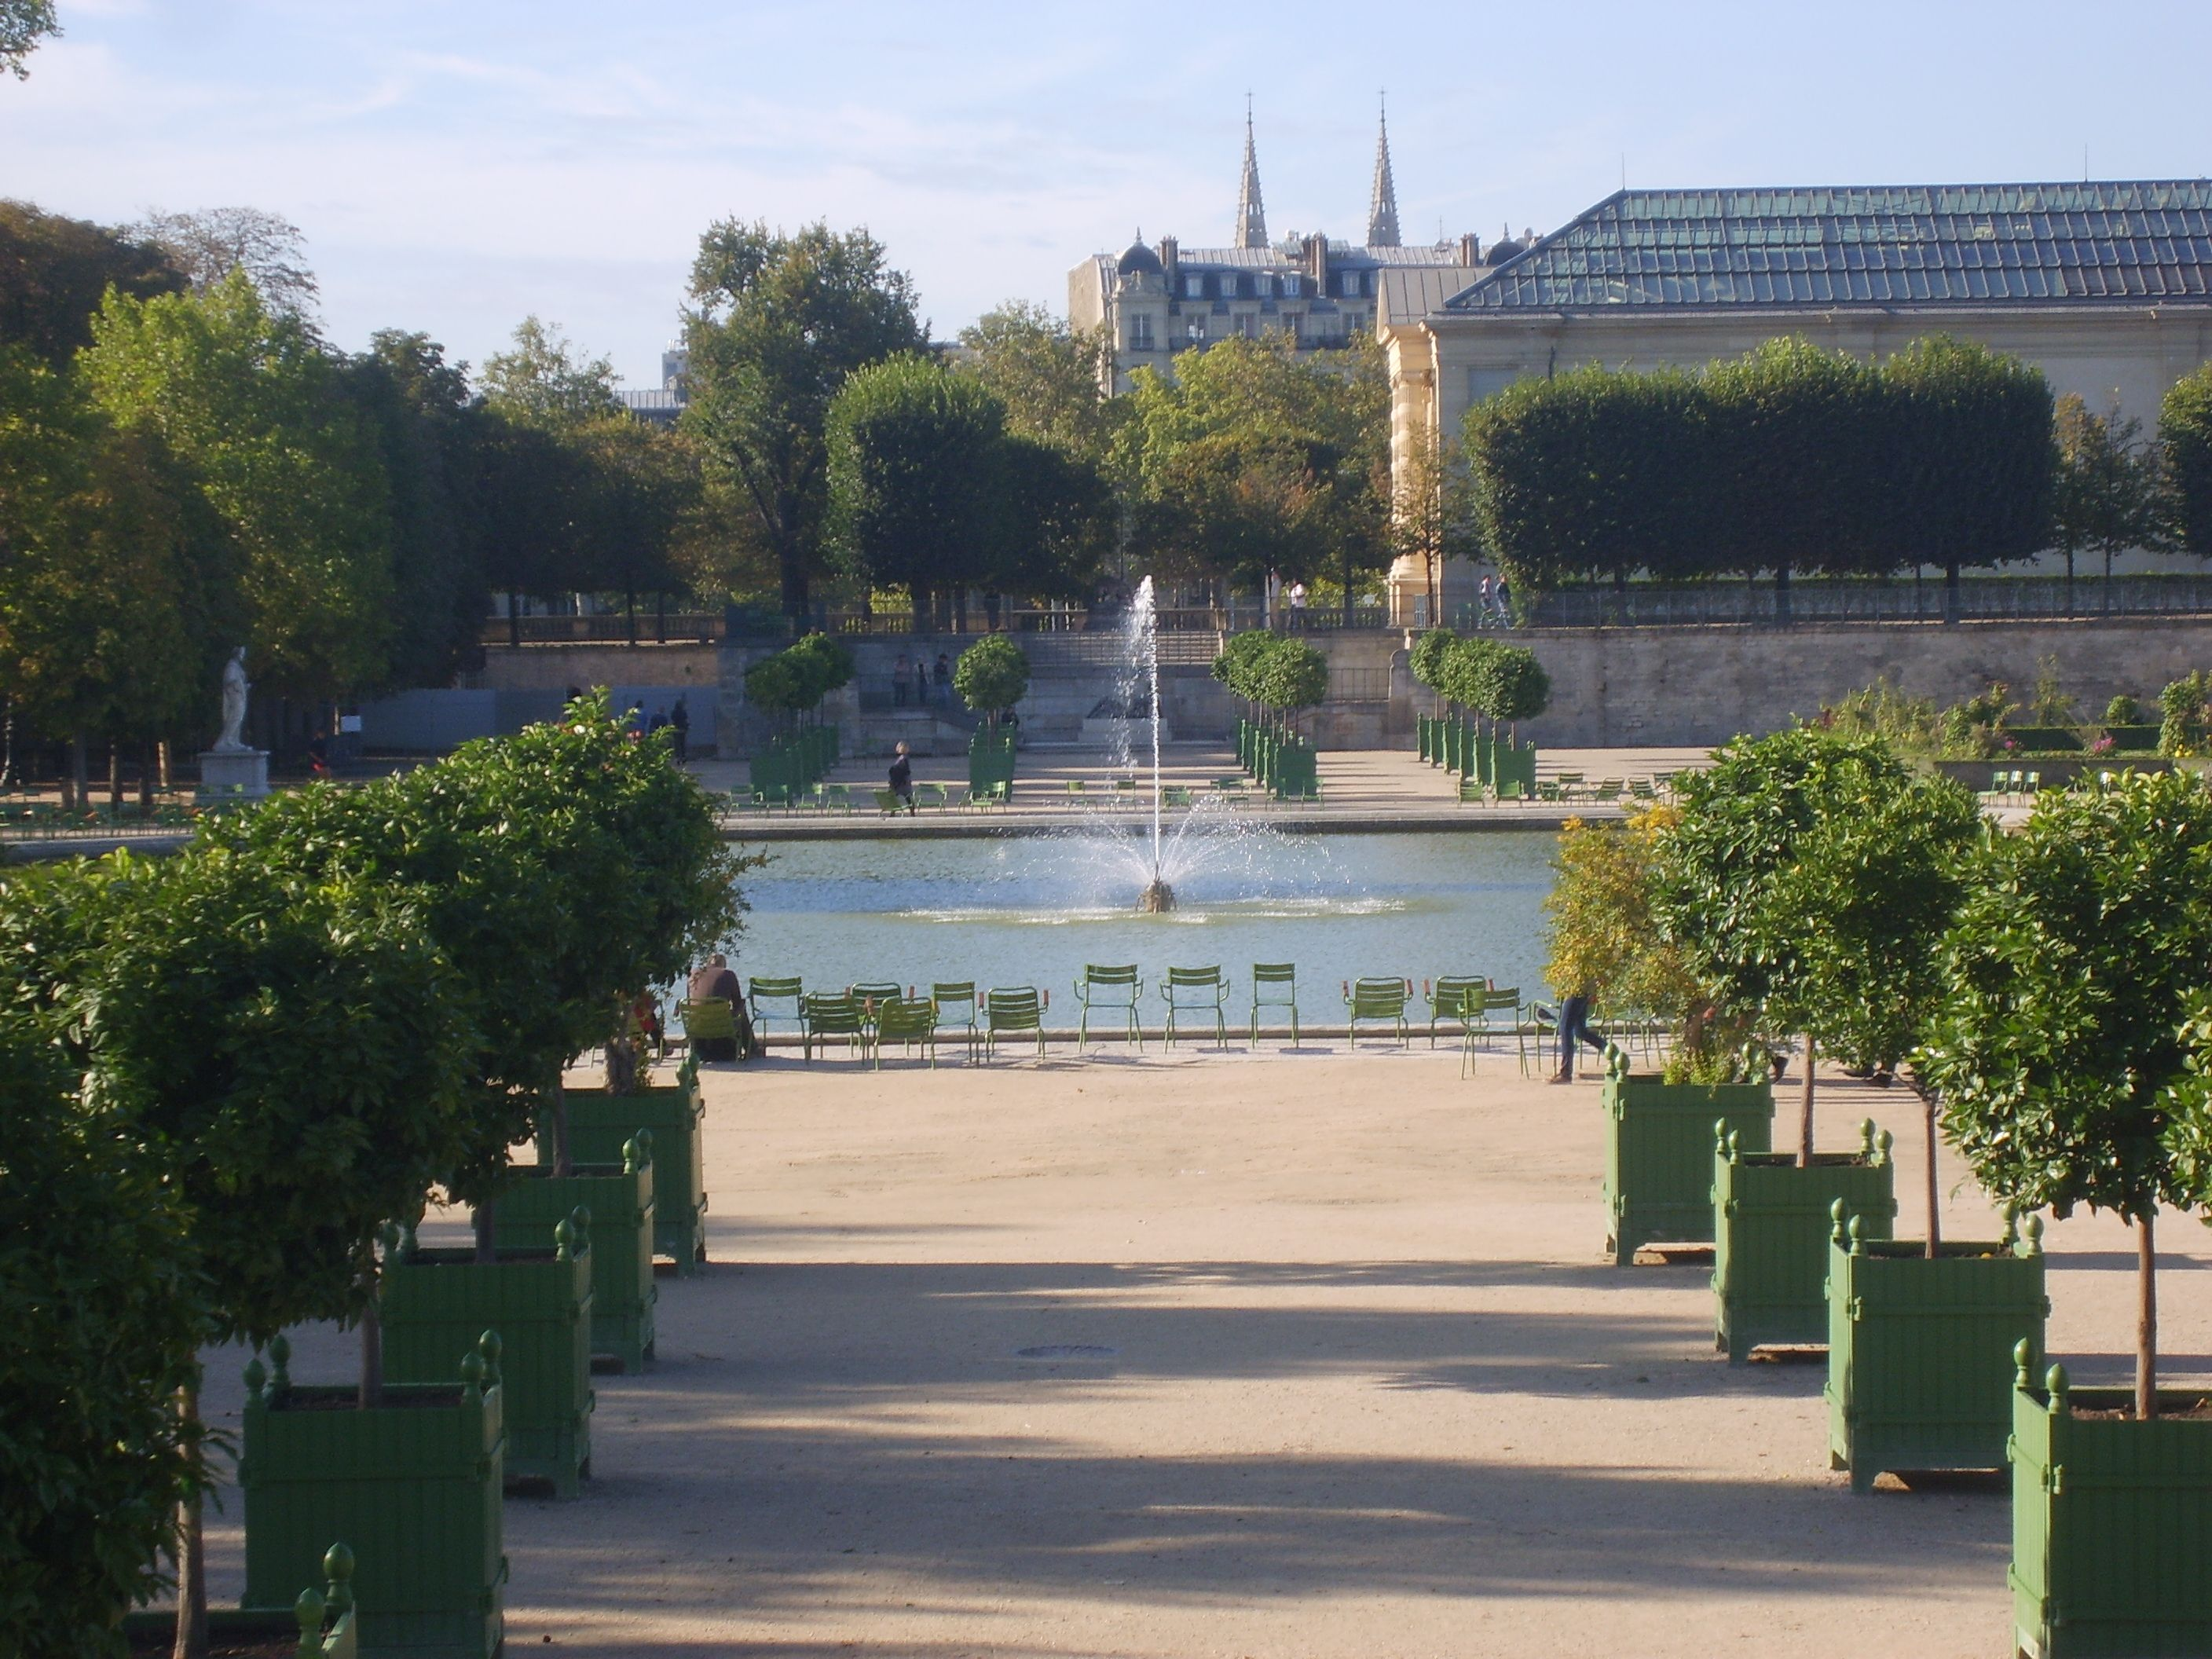 Amazing view of the Jardins des Tuileries